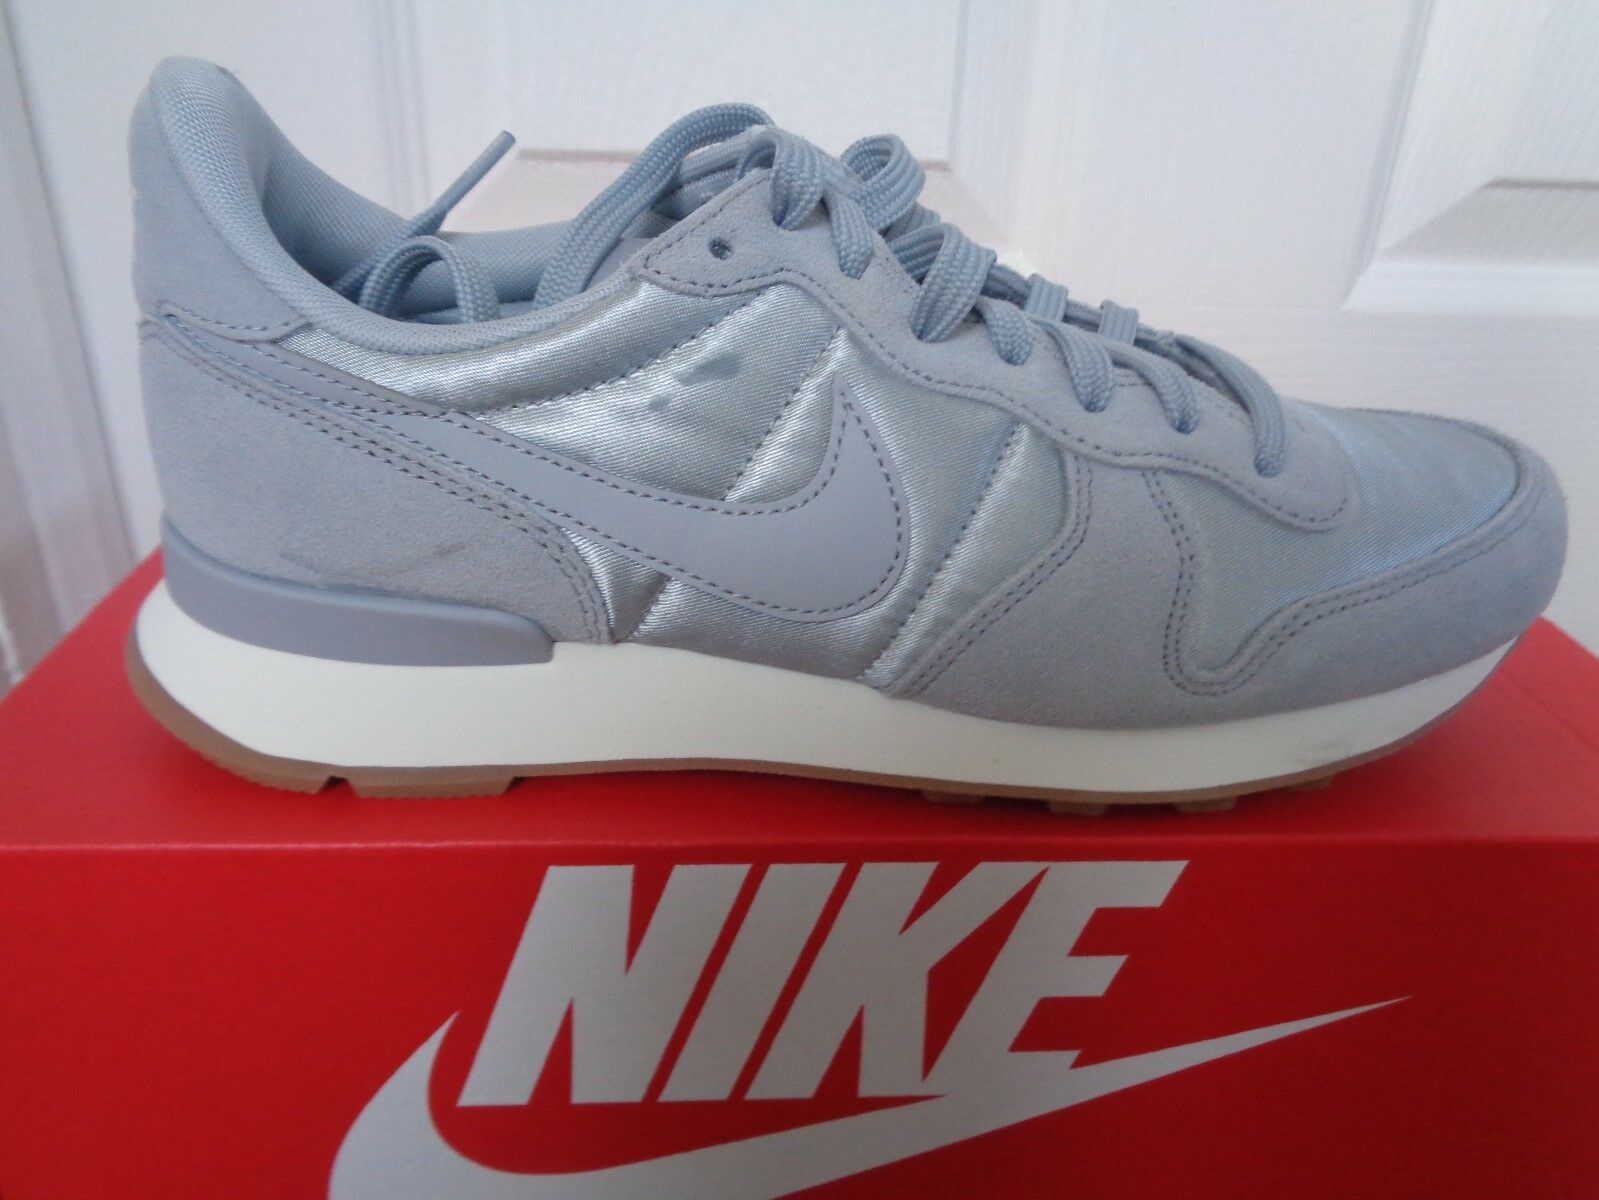 Nike Internationalist Damenss Turnschuhe trainers Turnschuhe Damenss 828407 018 uk 5.5 eu 39 us 8 NEW 956805